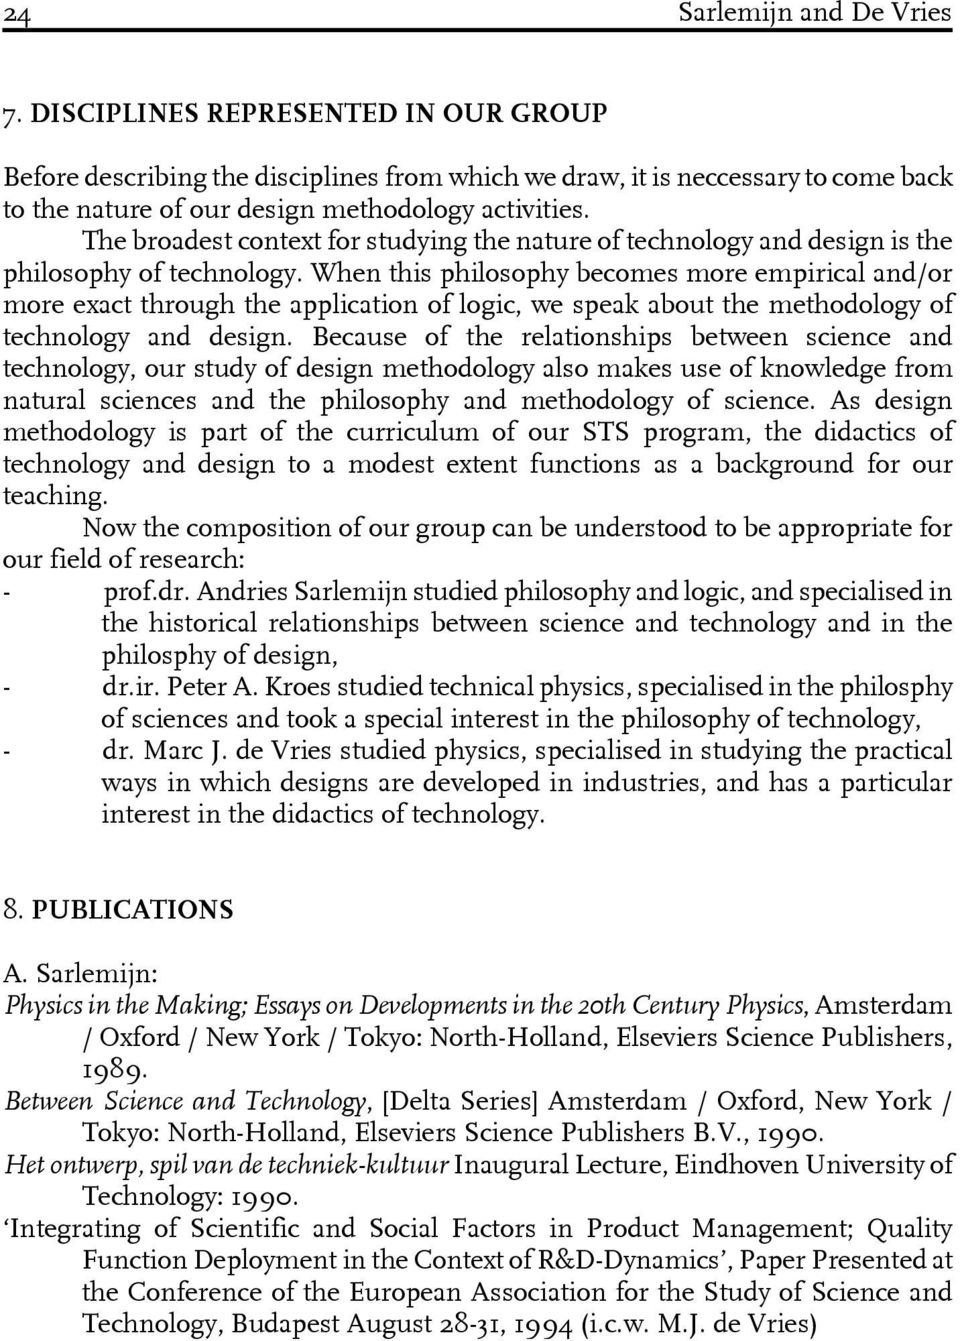 The broadest context for studying the nature of technology and design is the philosophy of technology.